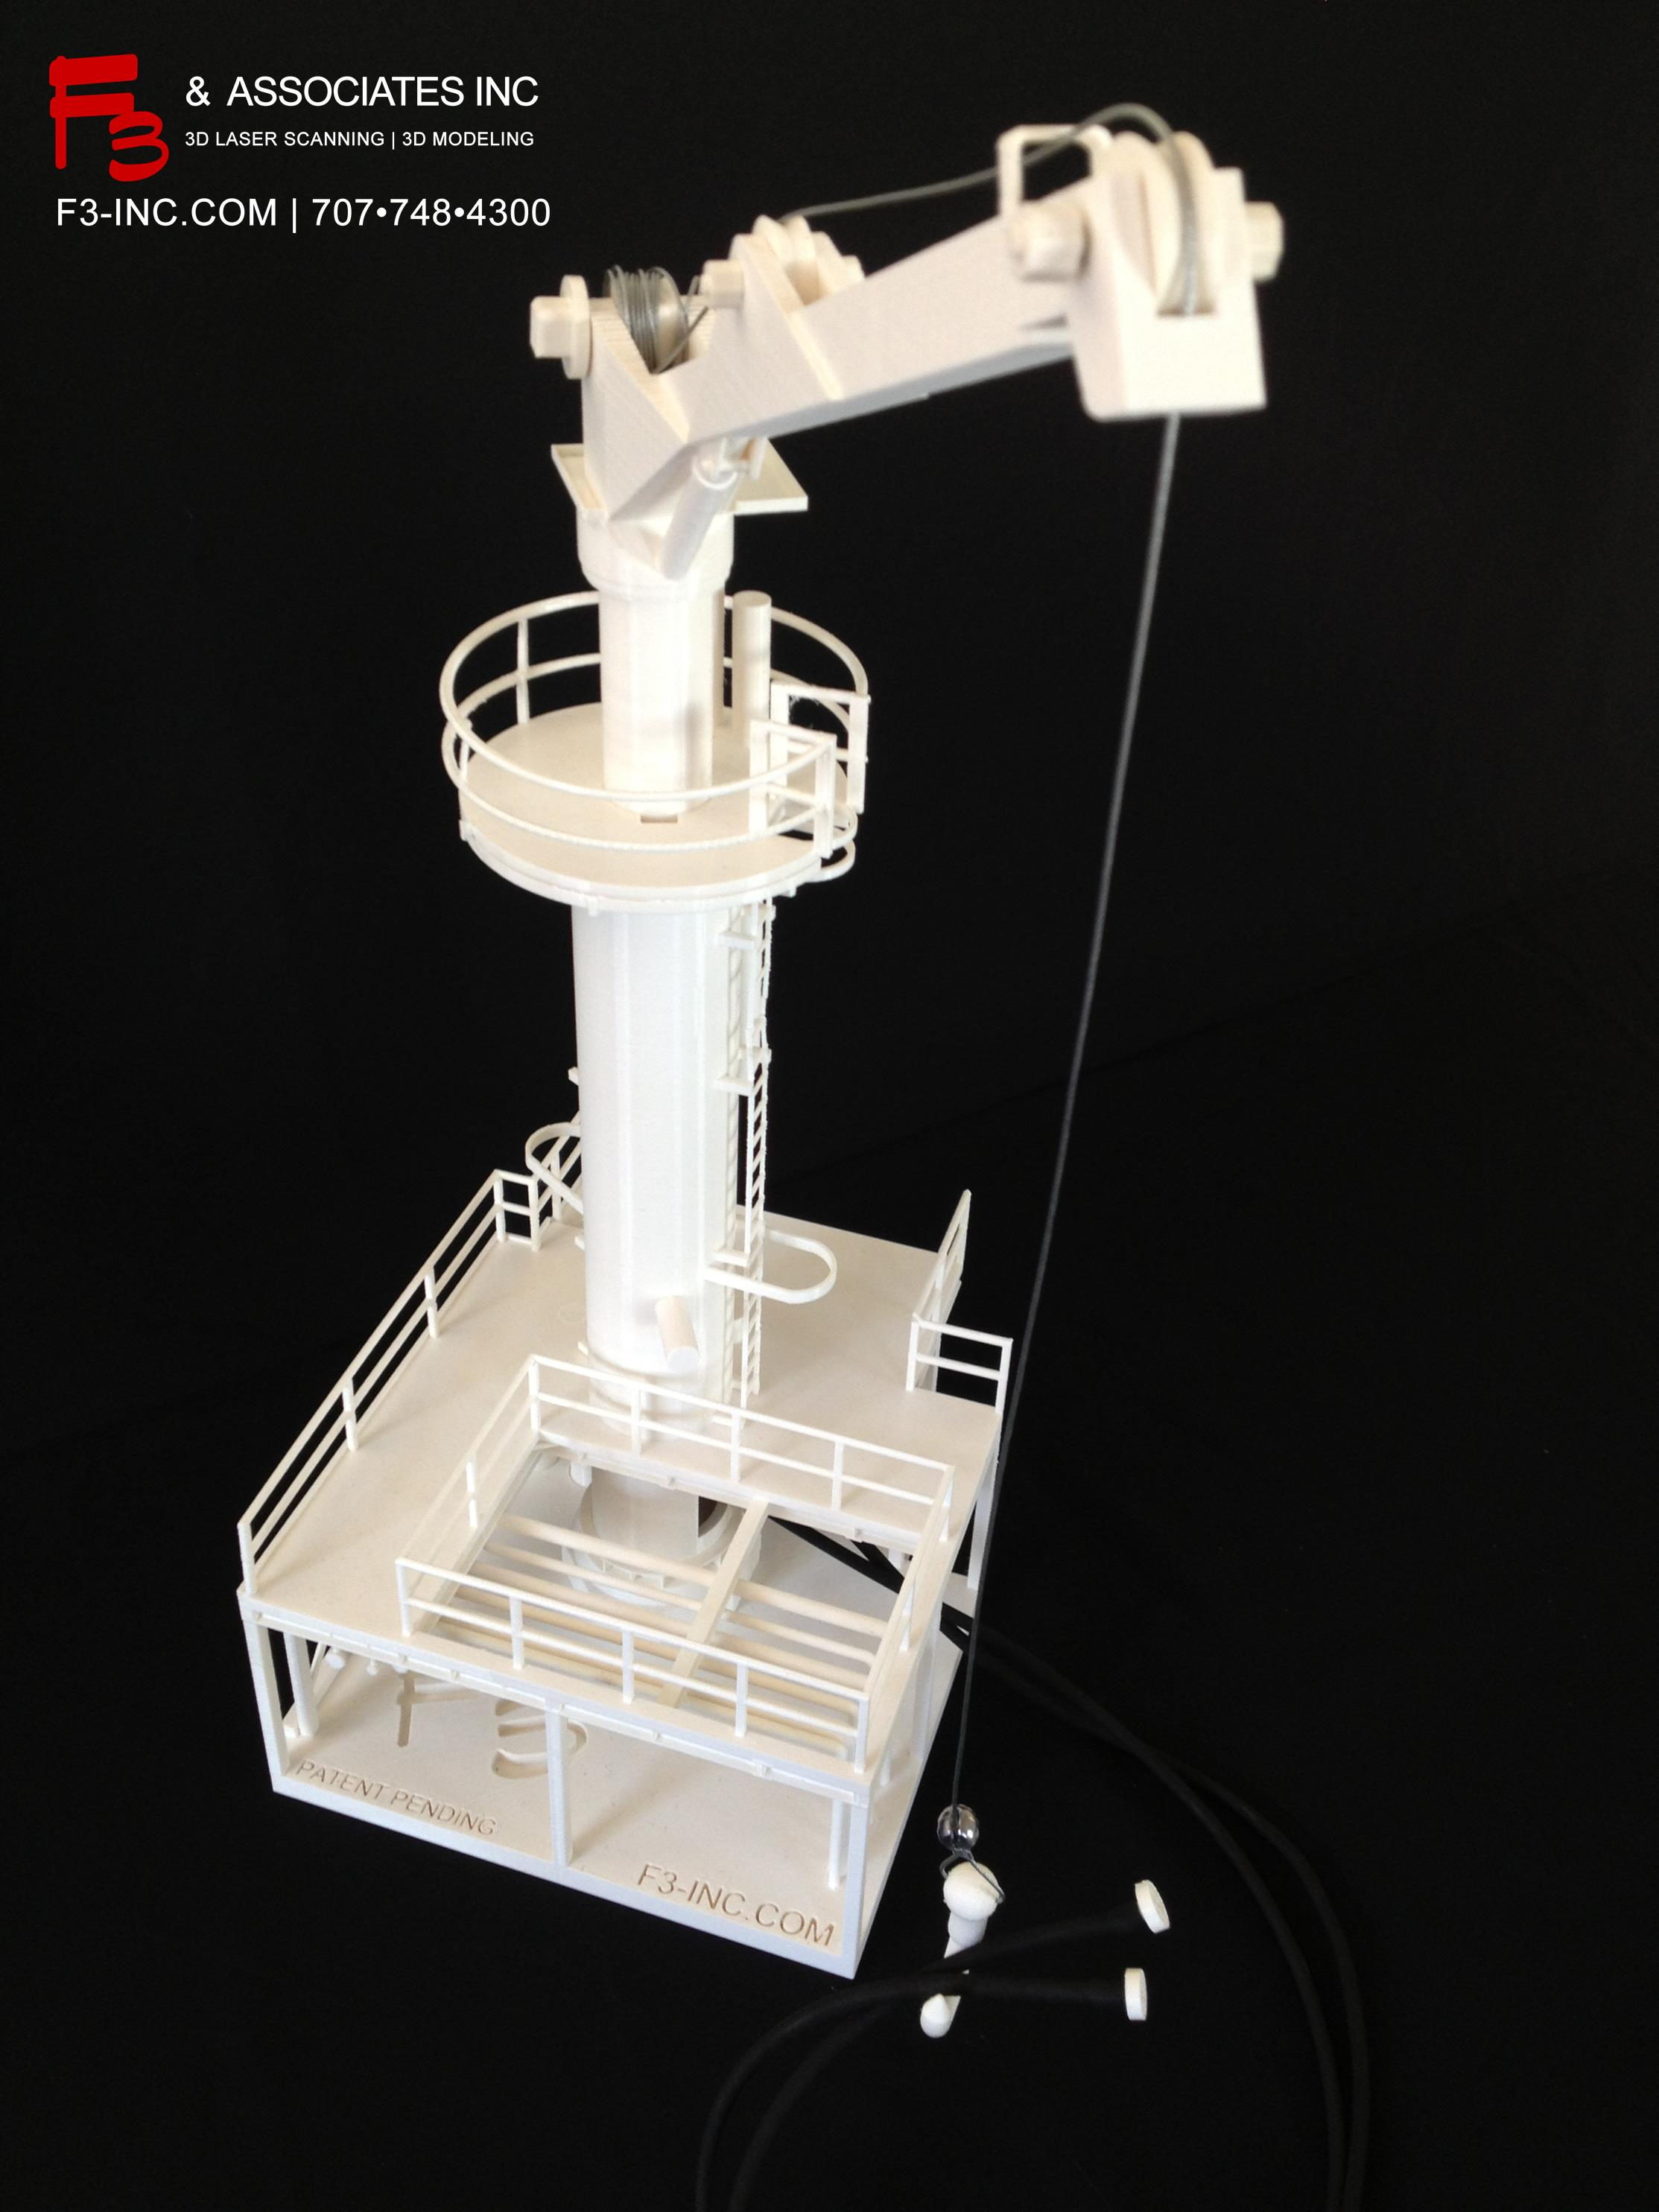 3D Industrial Printing example